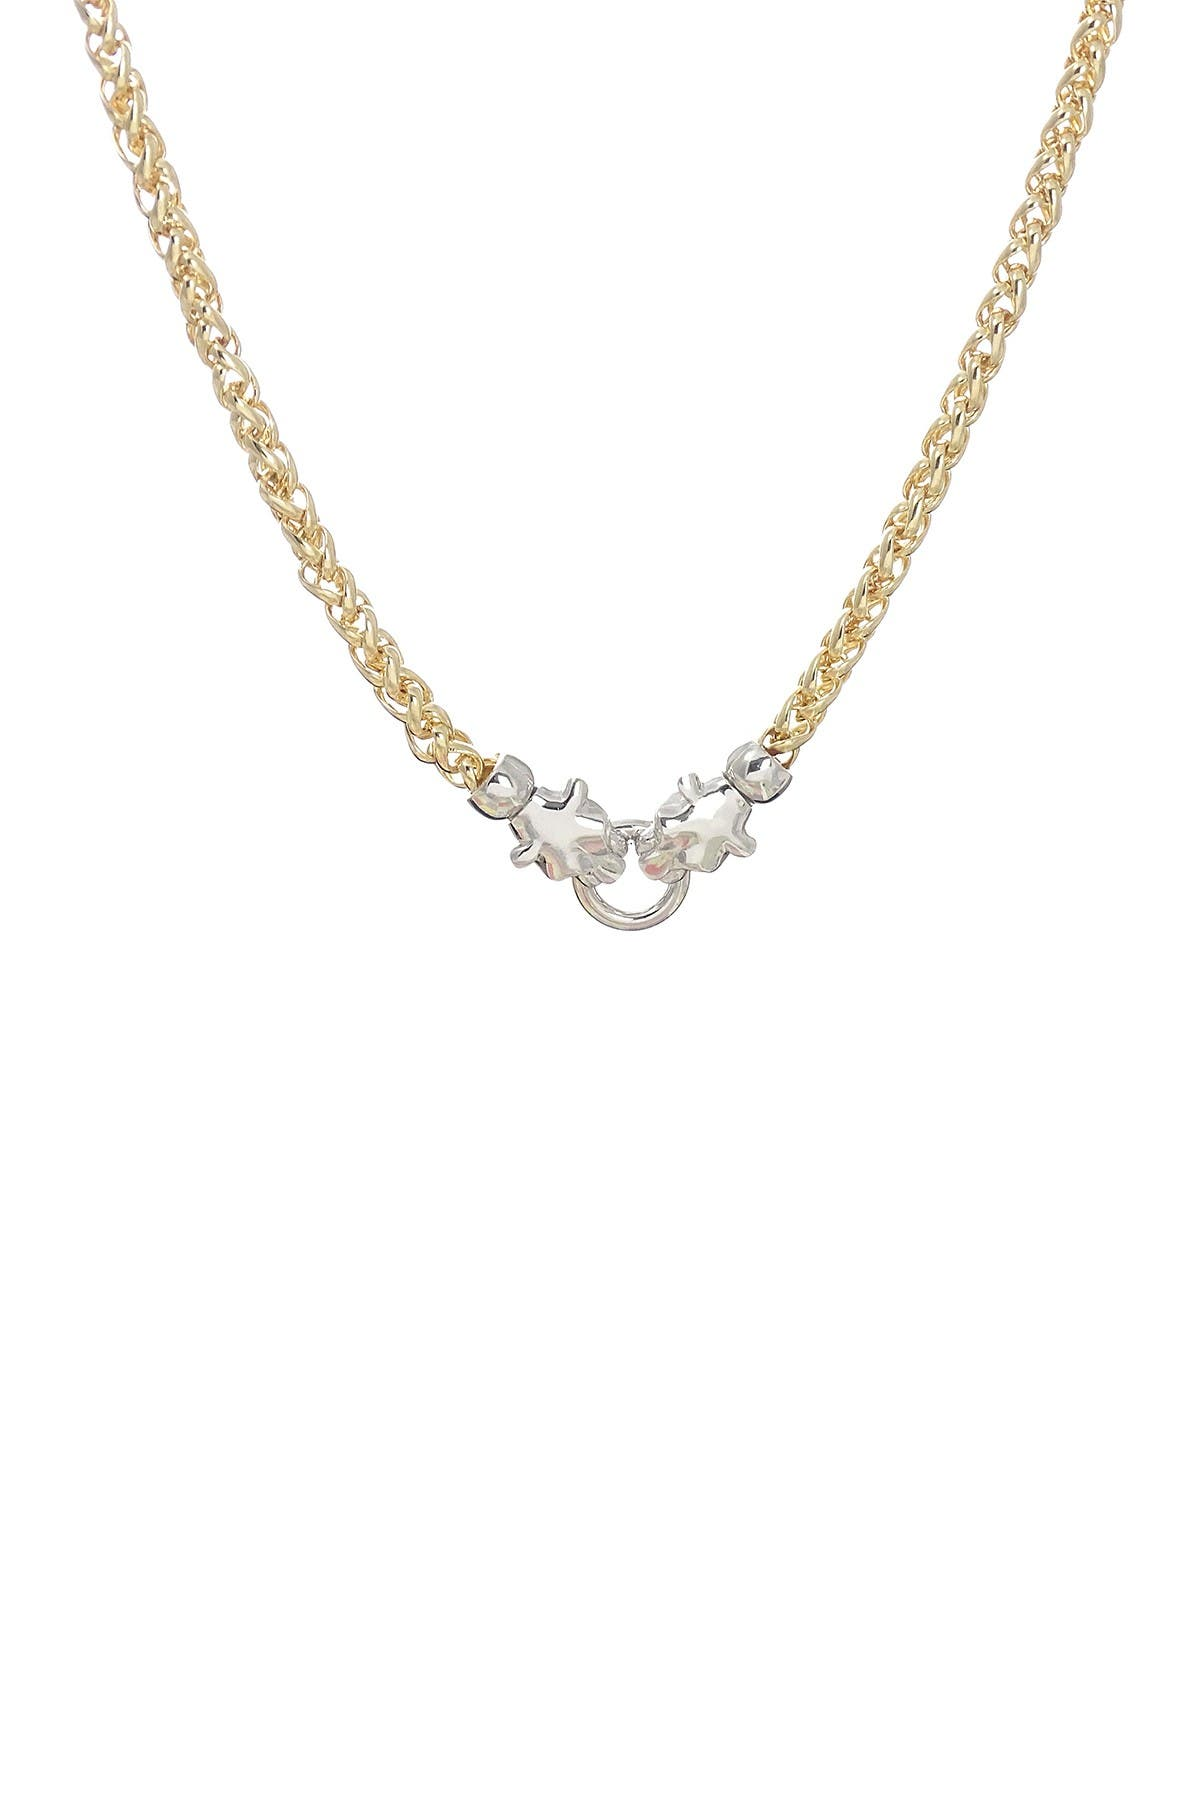 Image of Savvy Cie 18K Gold Plated Panther Necklace